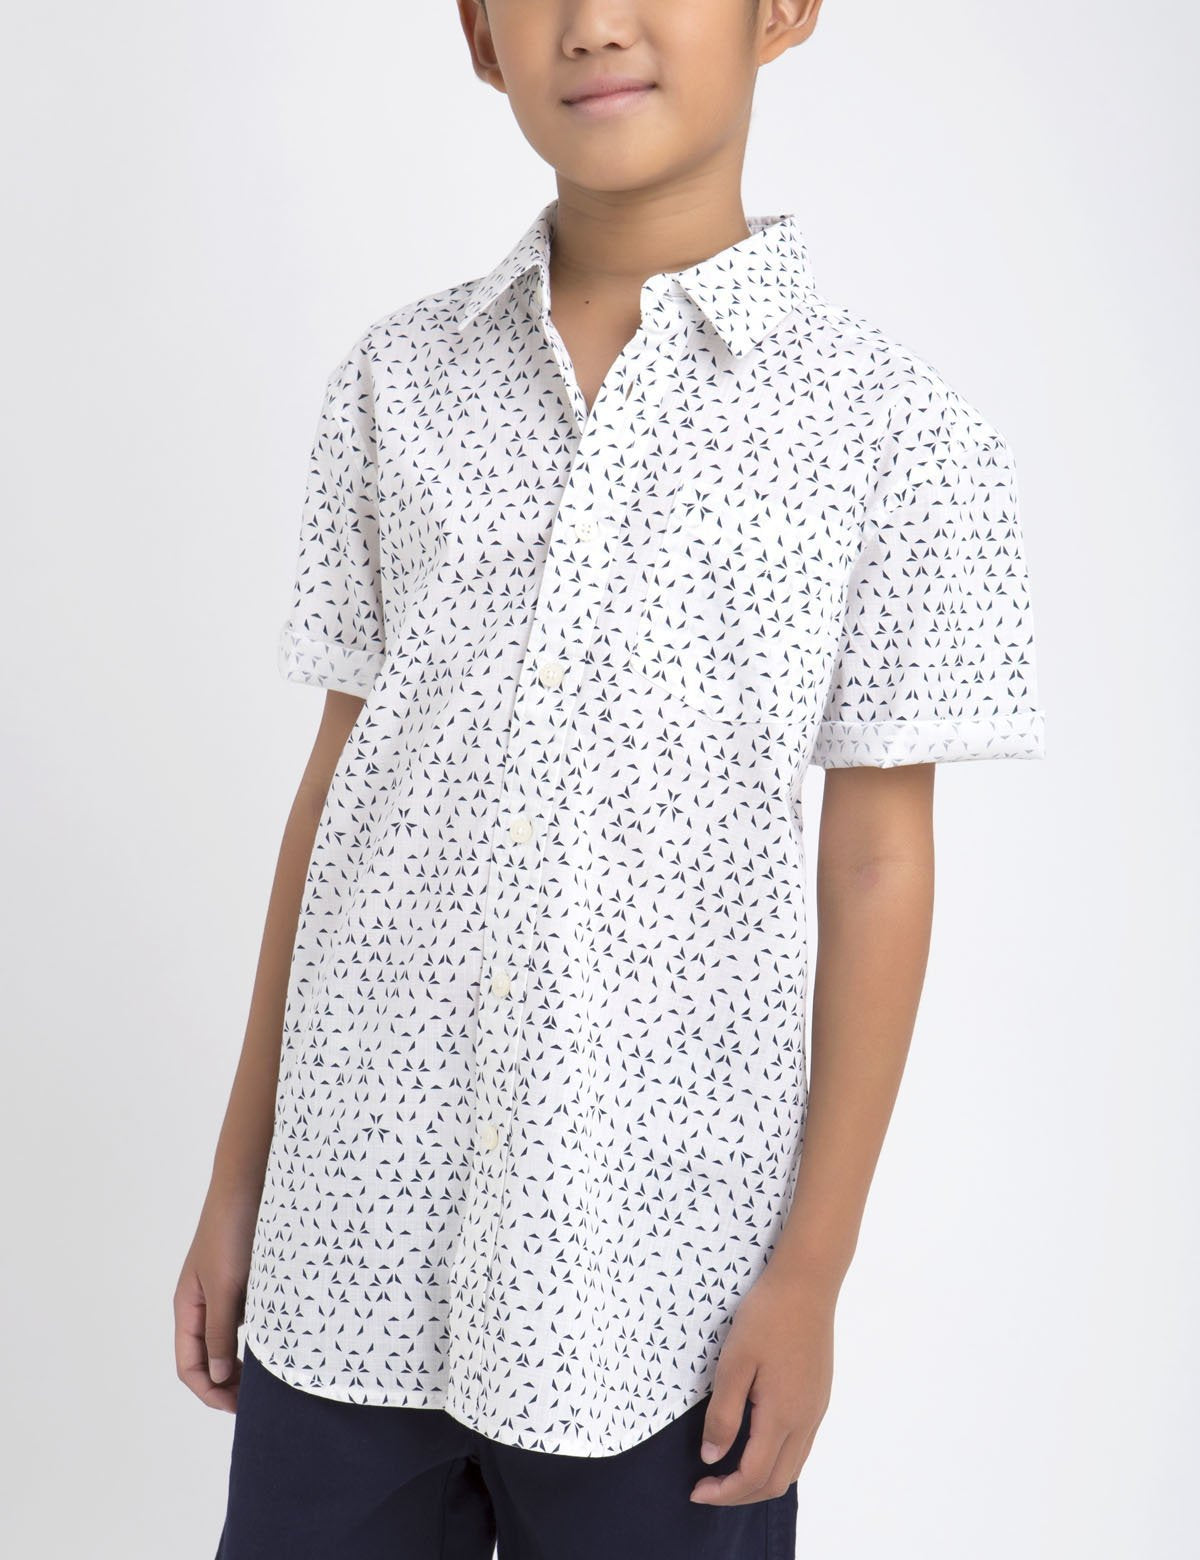 BOYS ORIGAMI PRINT SHIRT - U.S. Polo Assn.